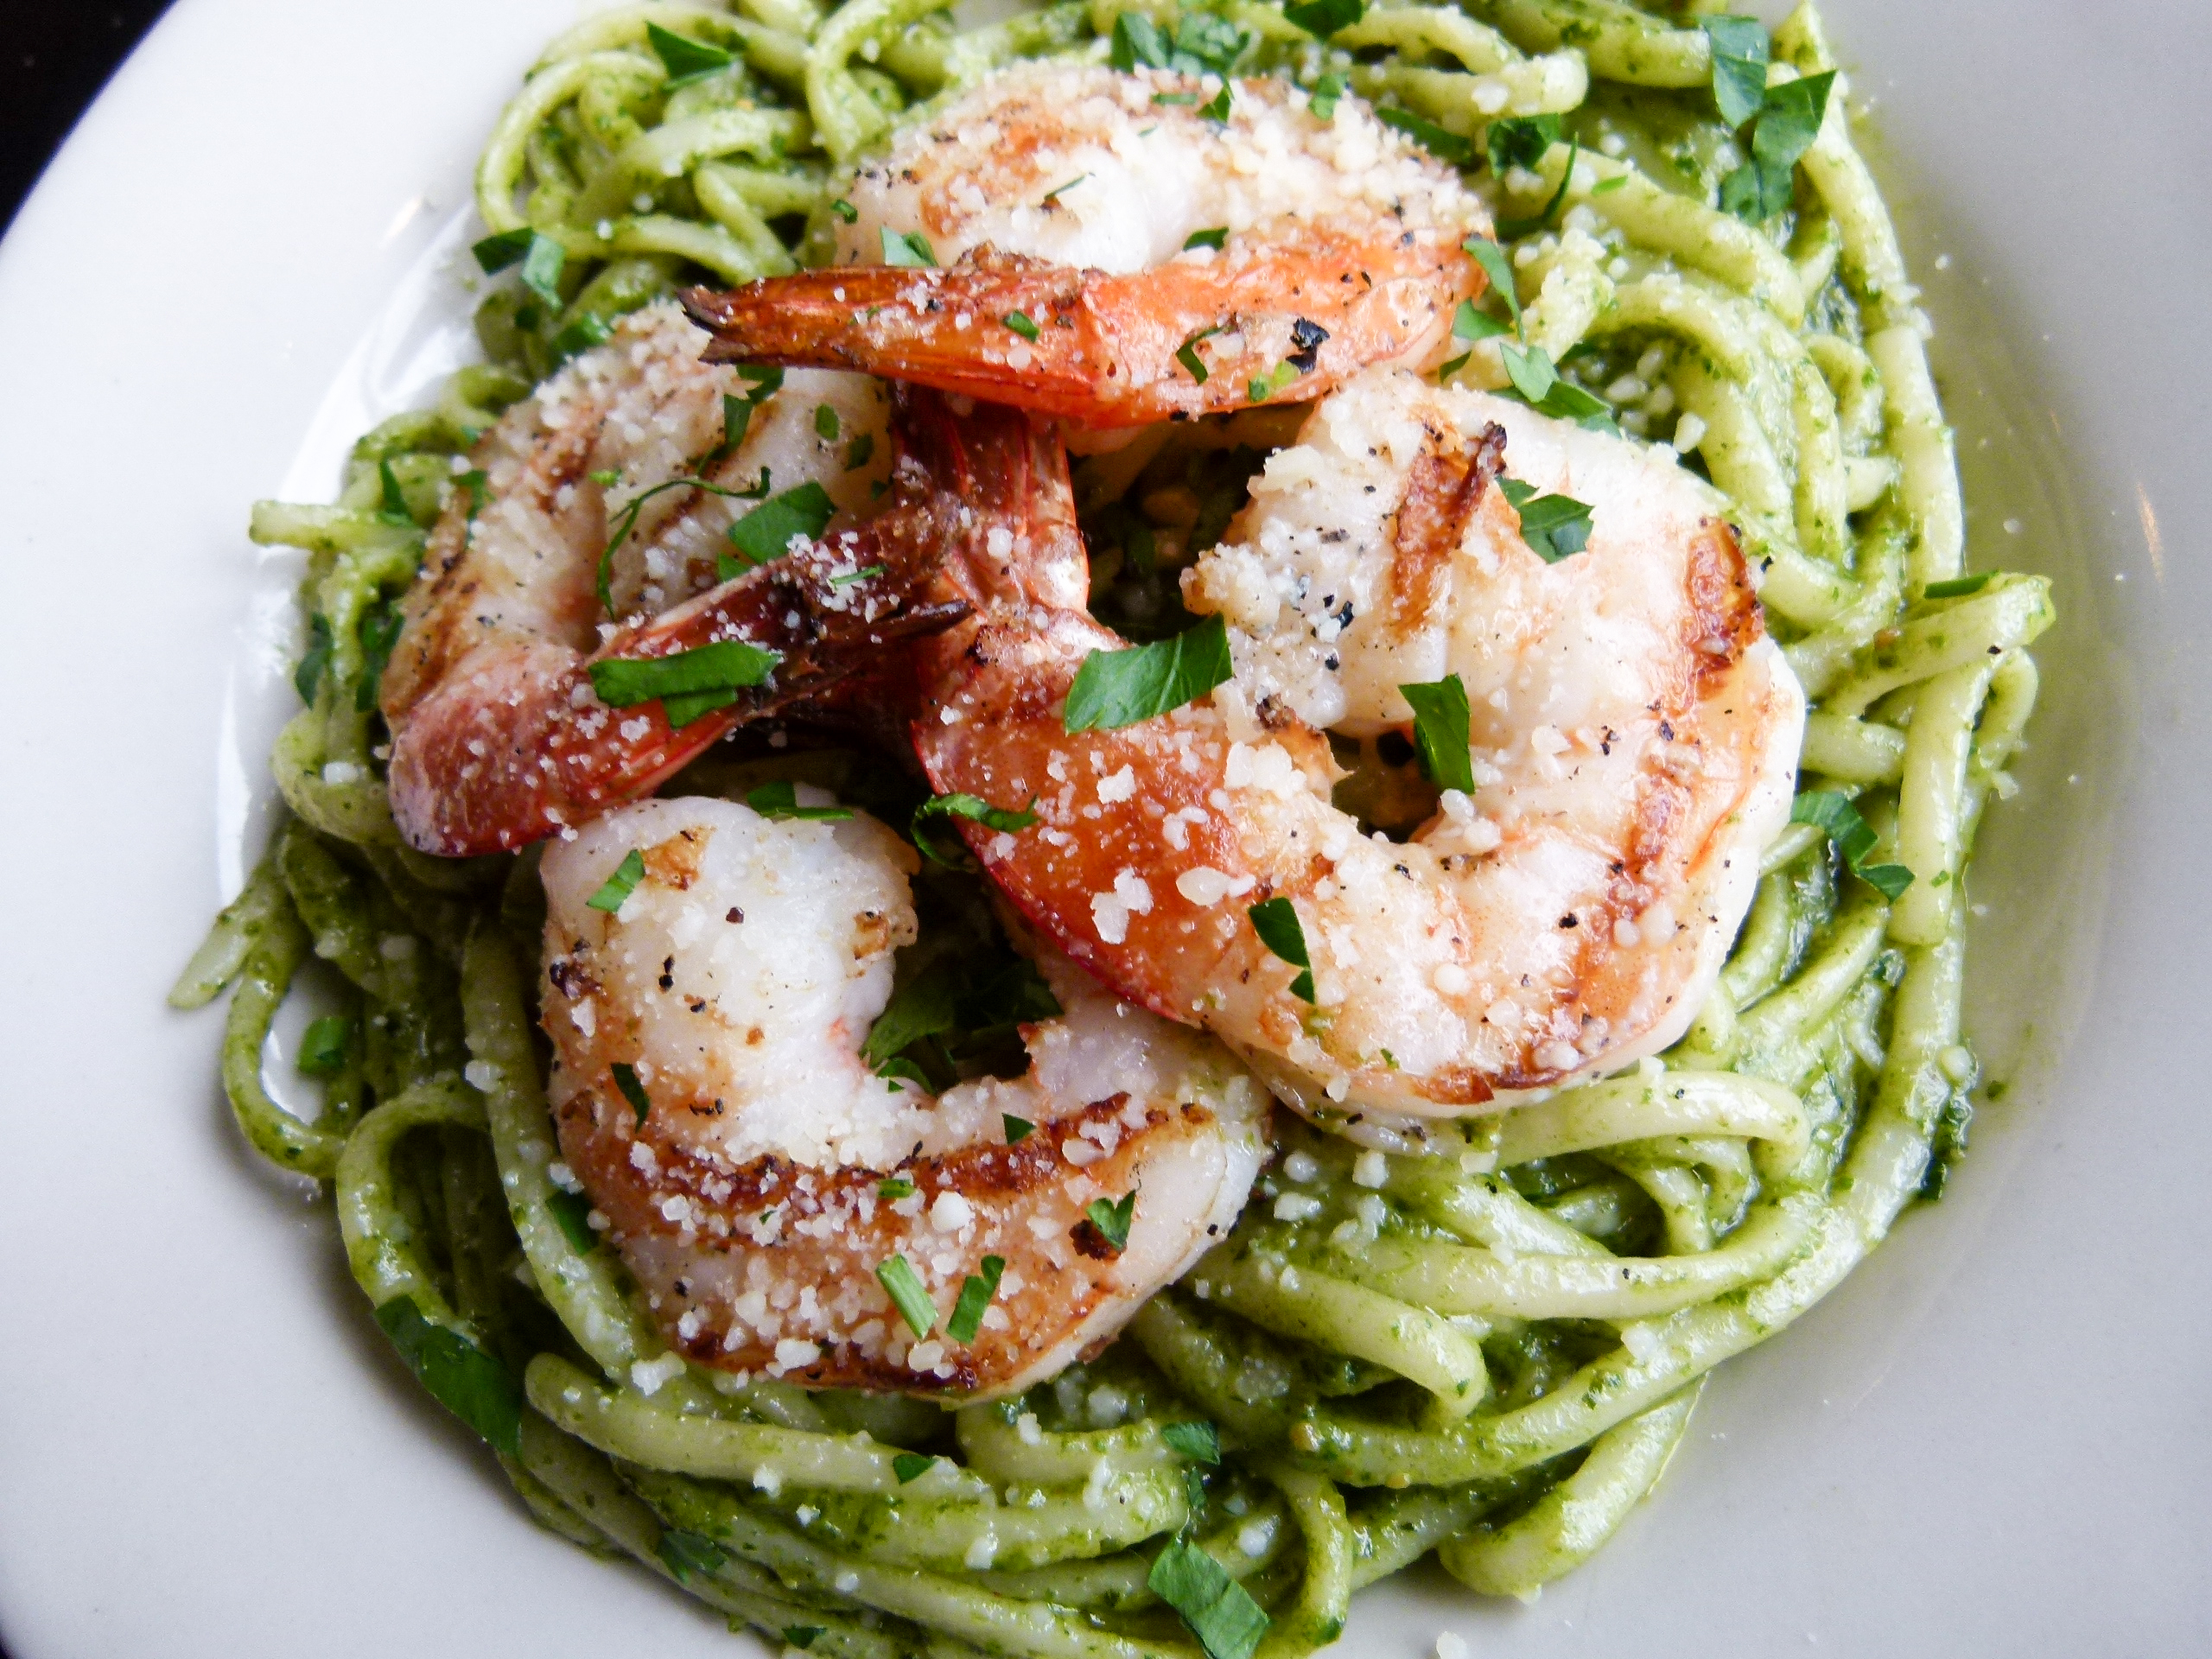 Linguini with pesto sauce and grilled shrimp.